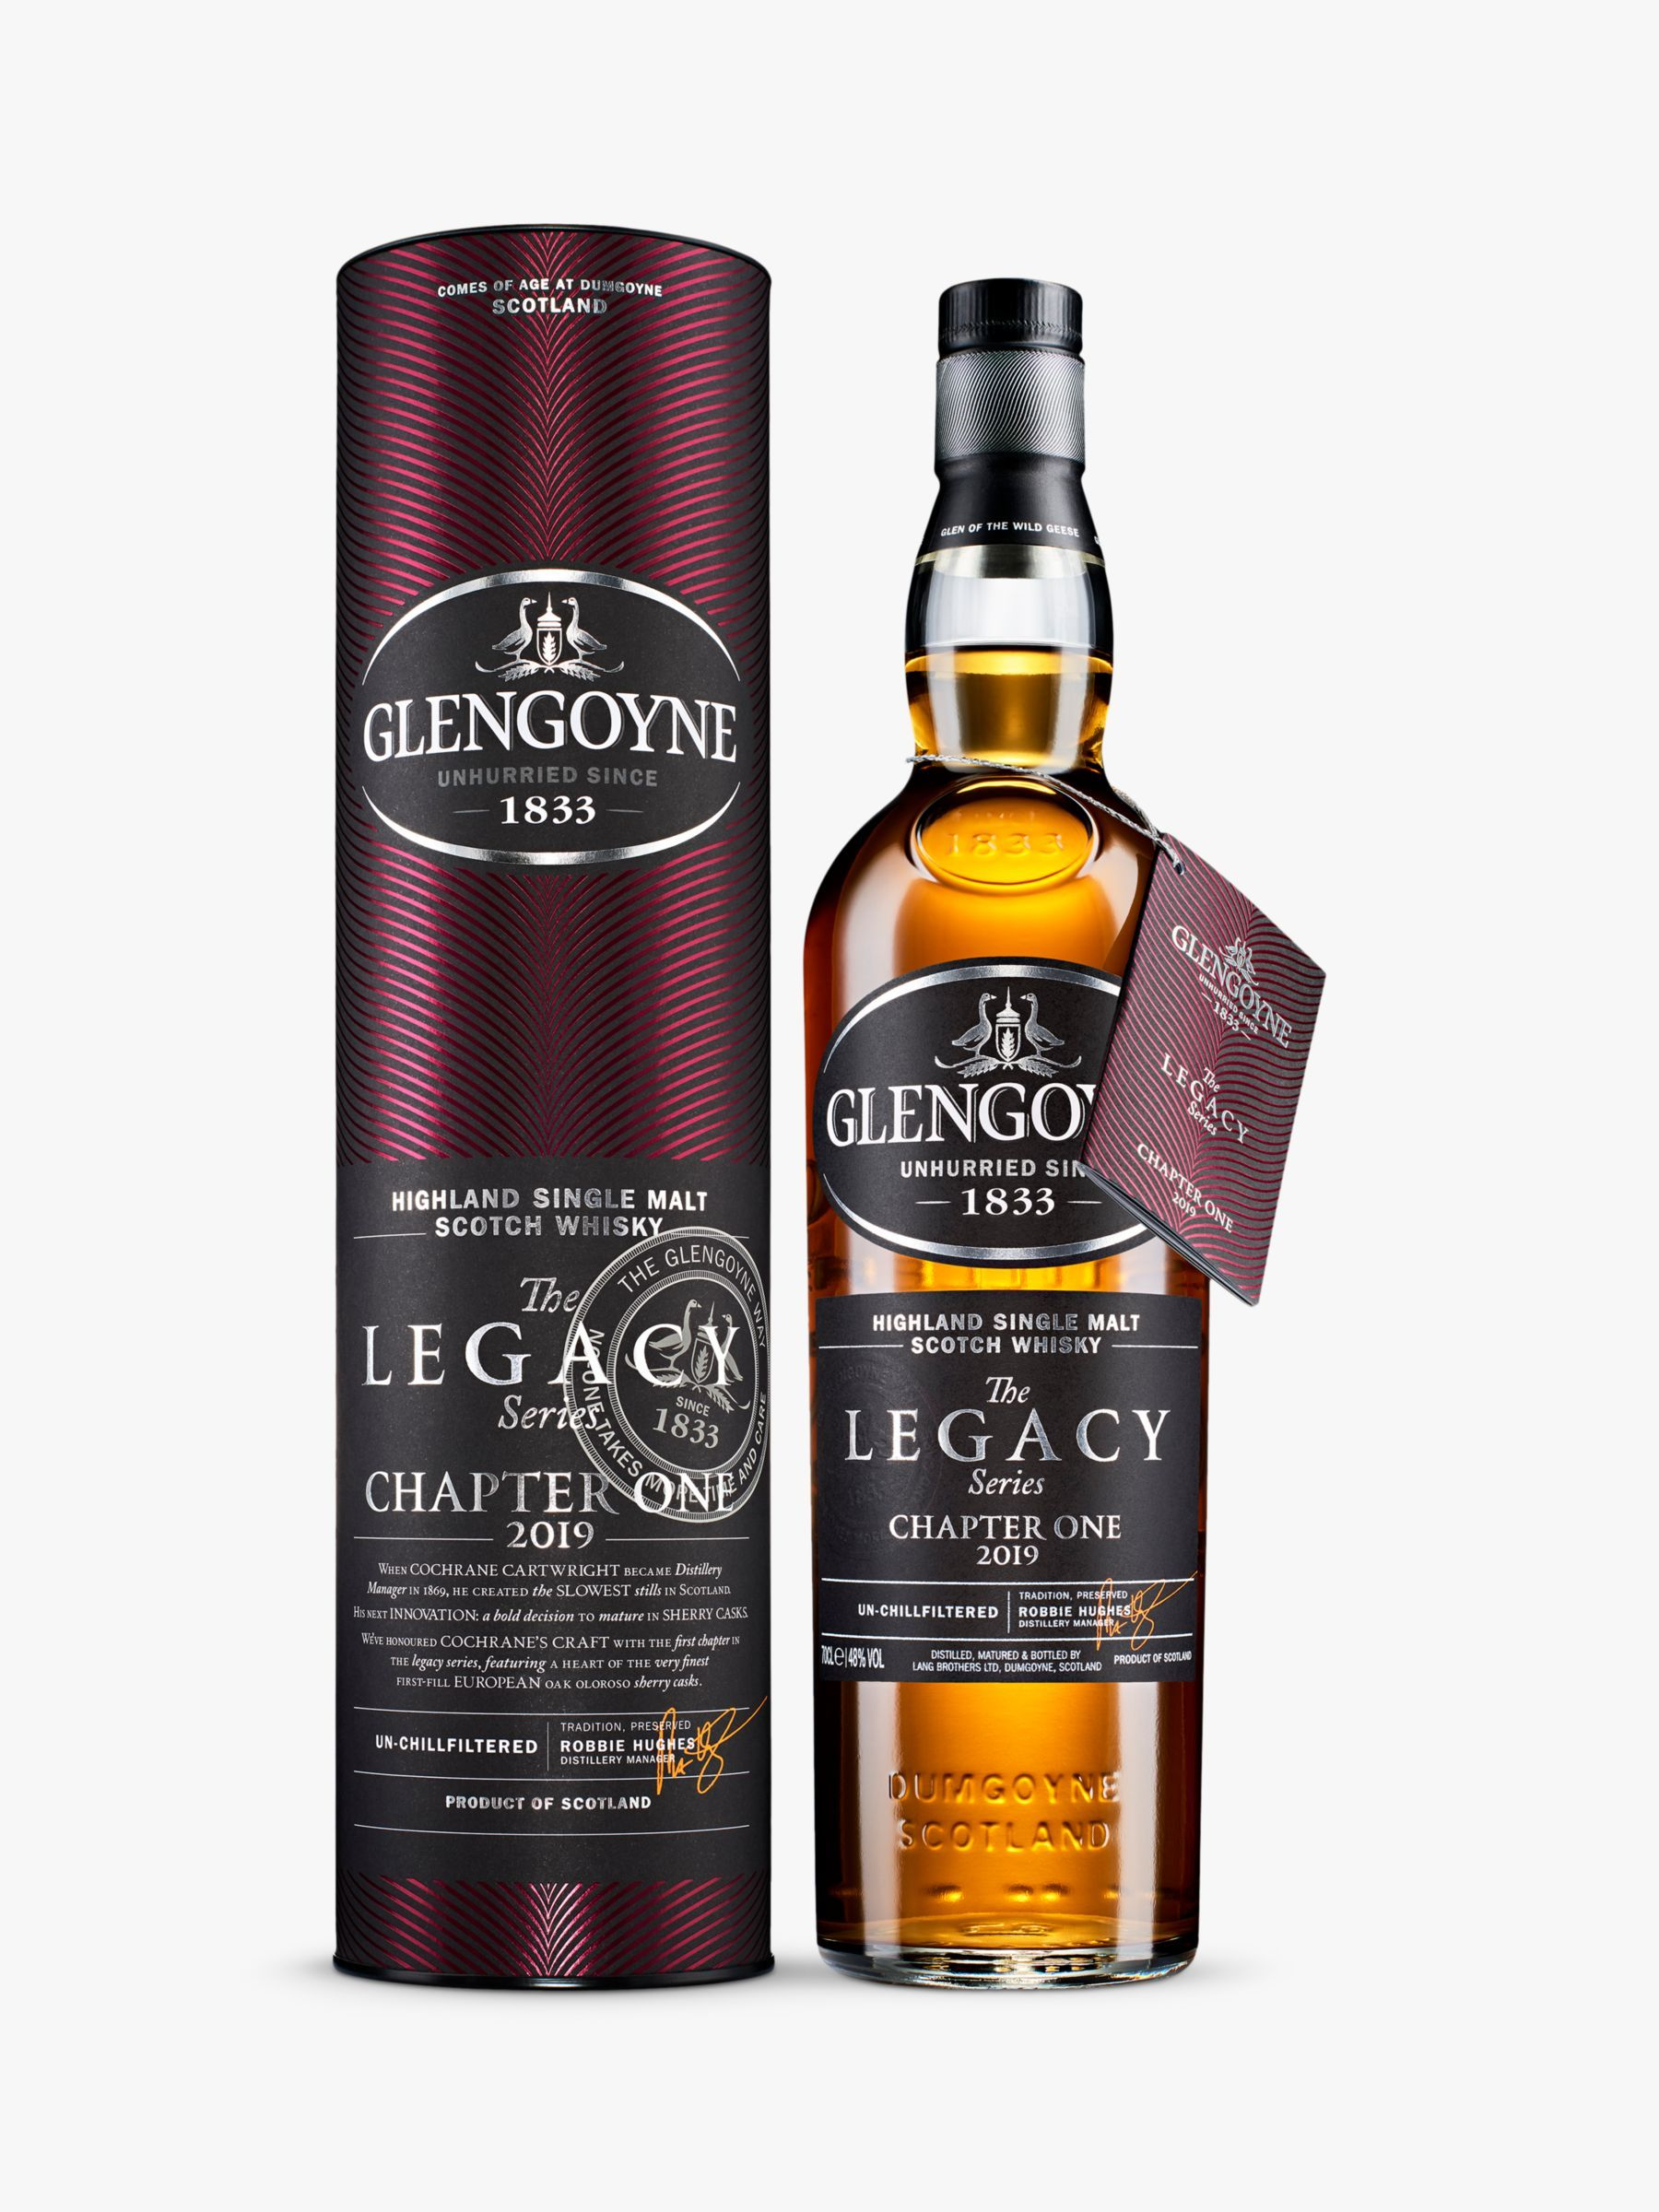 Glengoyne Legacy Series Chapter One Whisky 2019 70cl Whisky